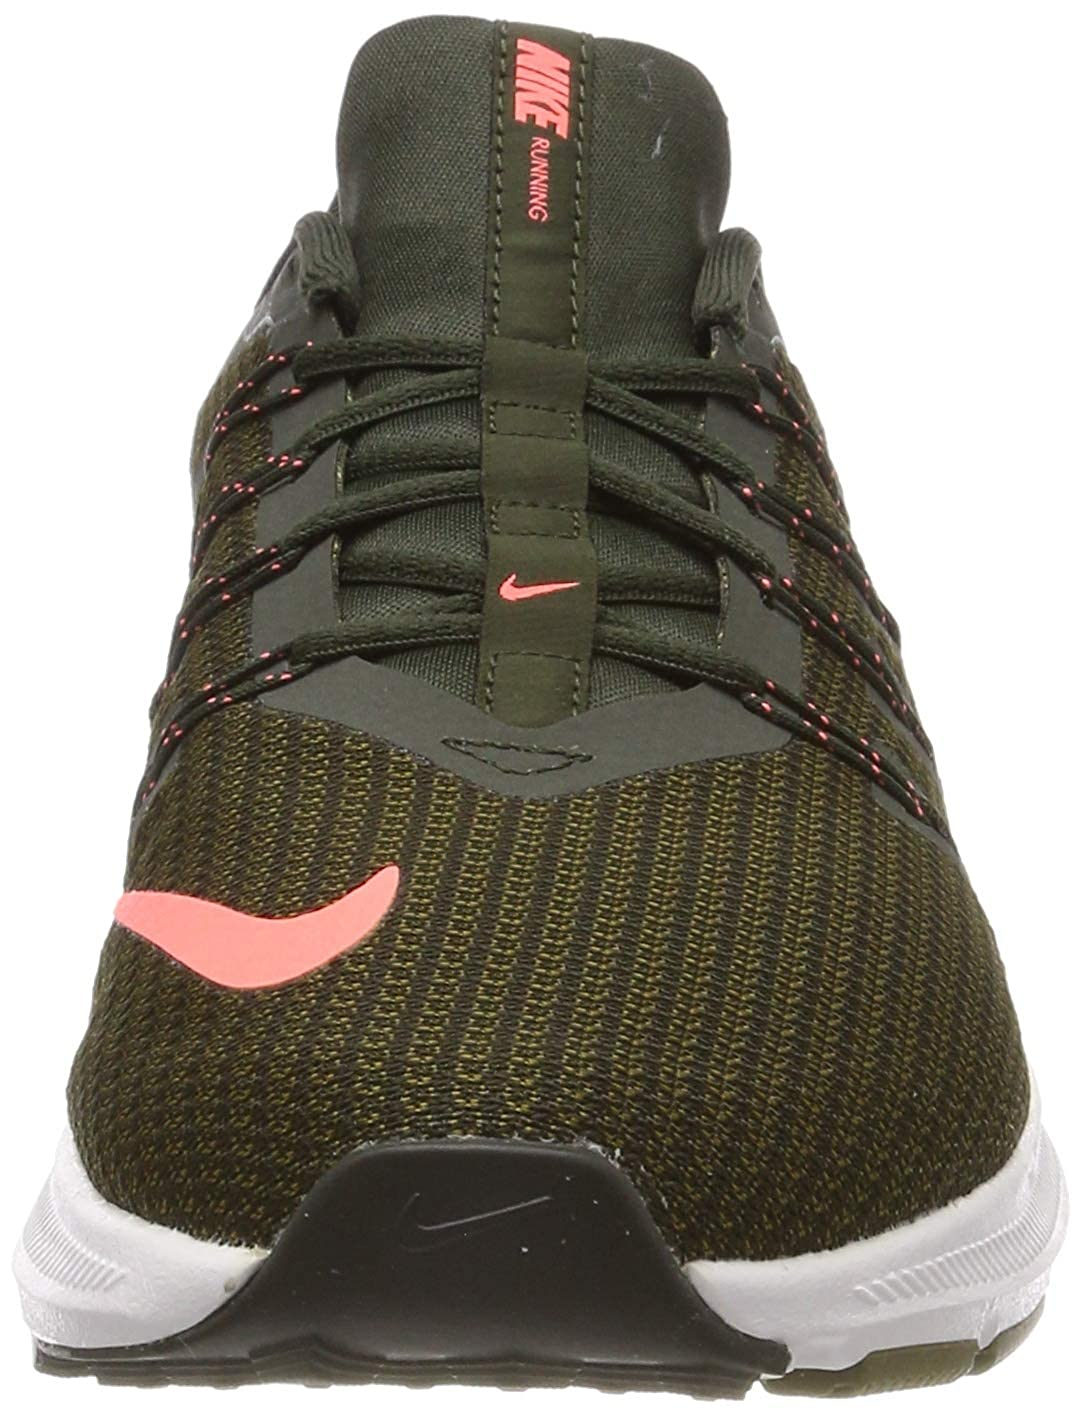 new arrival 6cafb 60ed4 Nike WMNS Quest, Chaussures de Running Femme AA7412